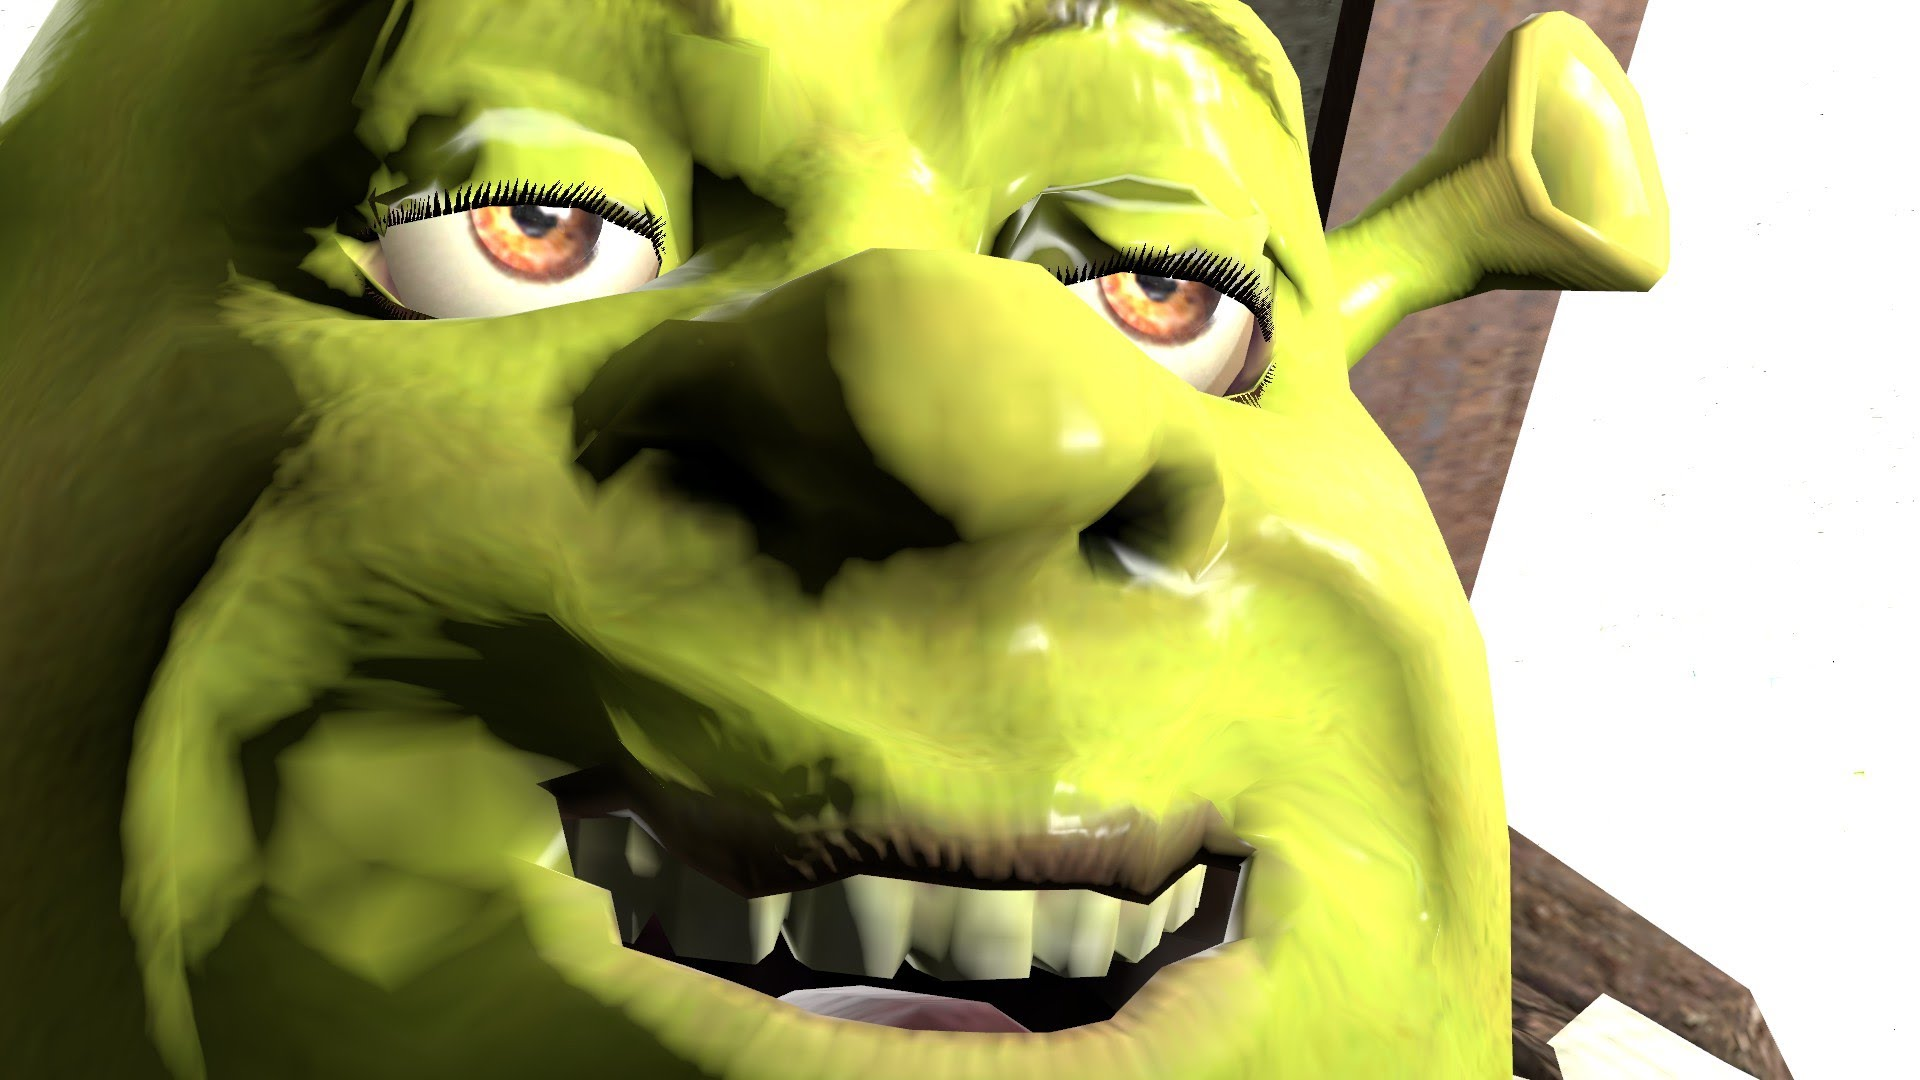 Shrek Wallpaper 1920x1080 61220